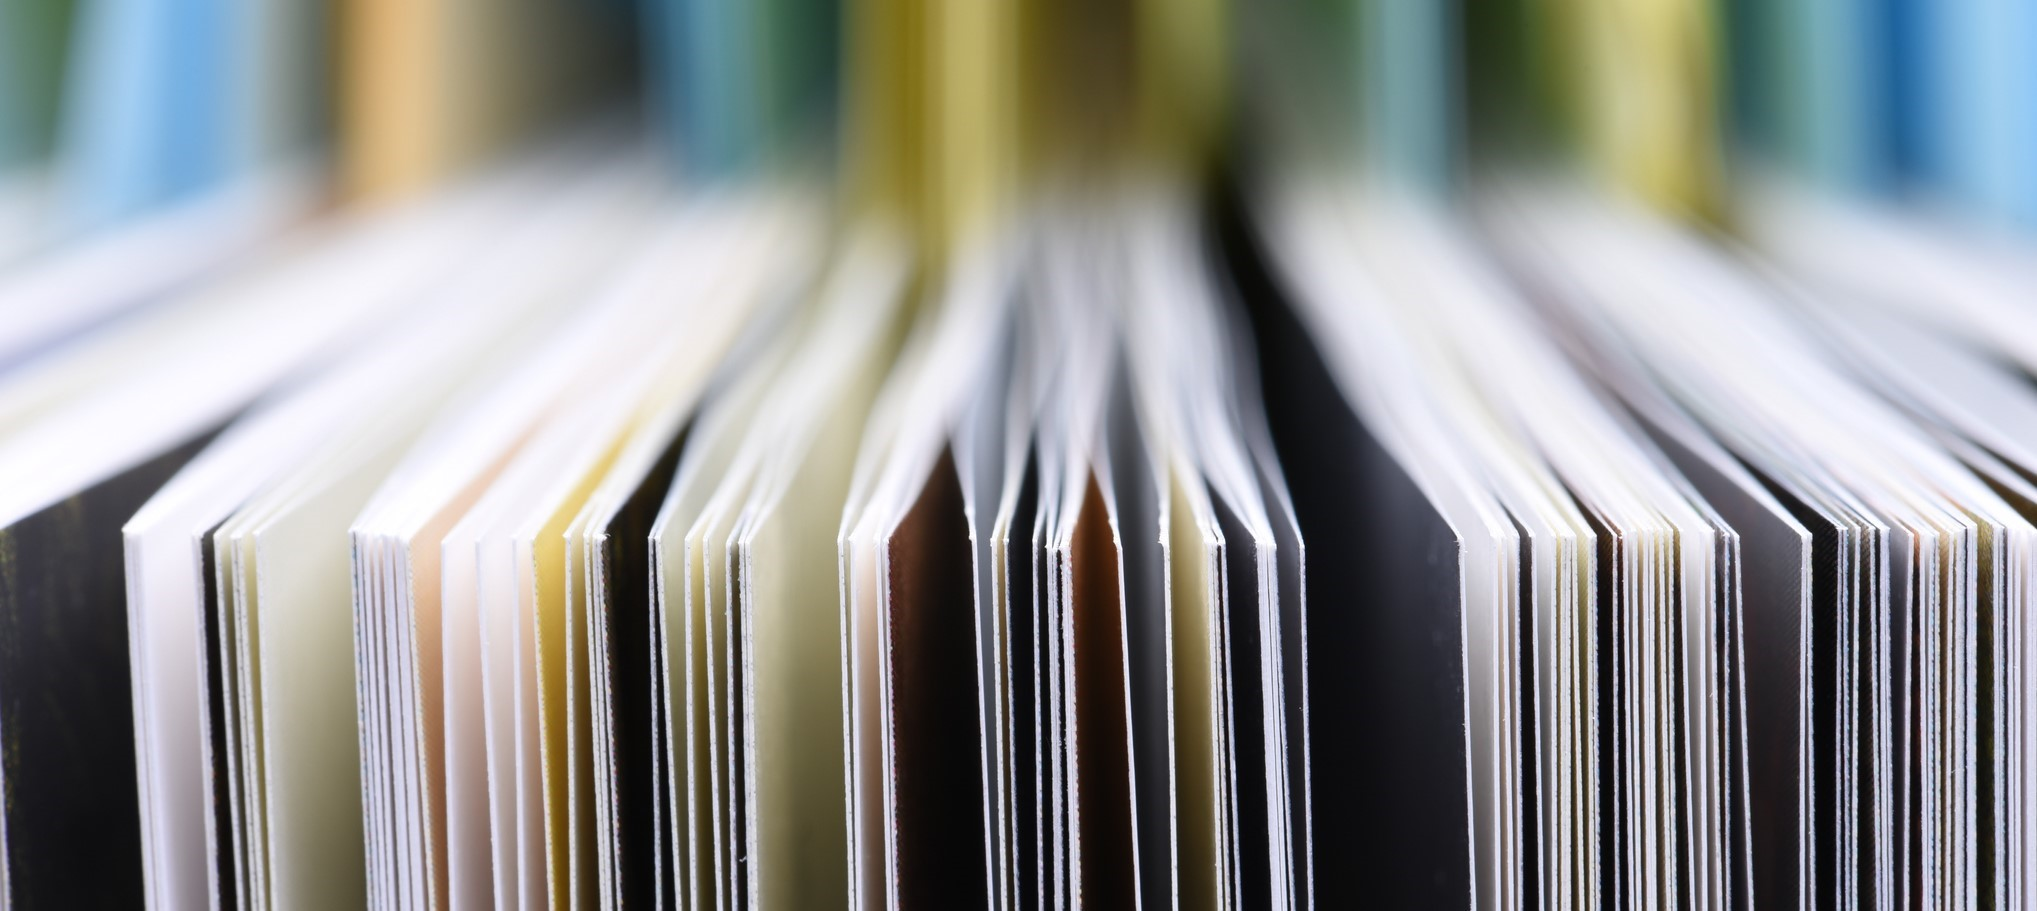 Publication booklets stacked together in an upright position